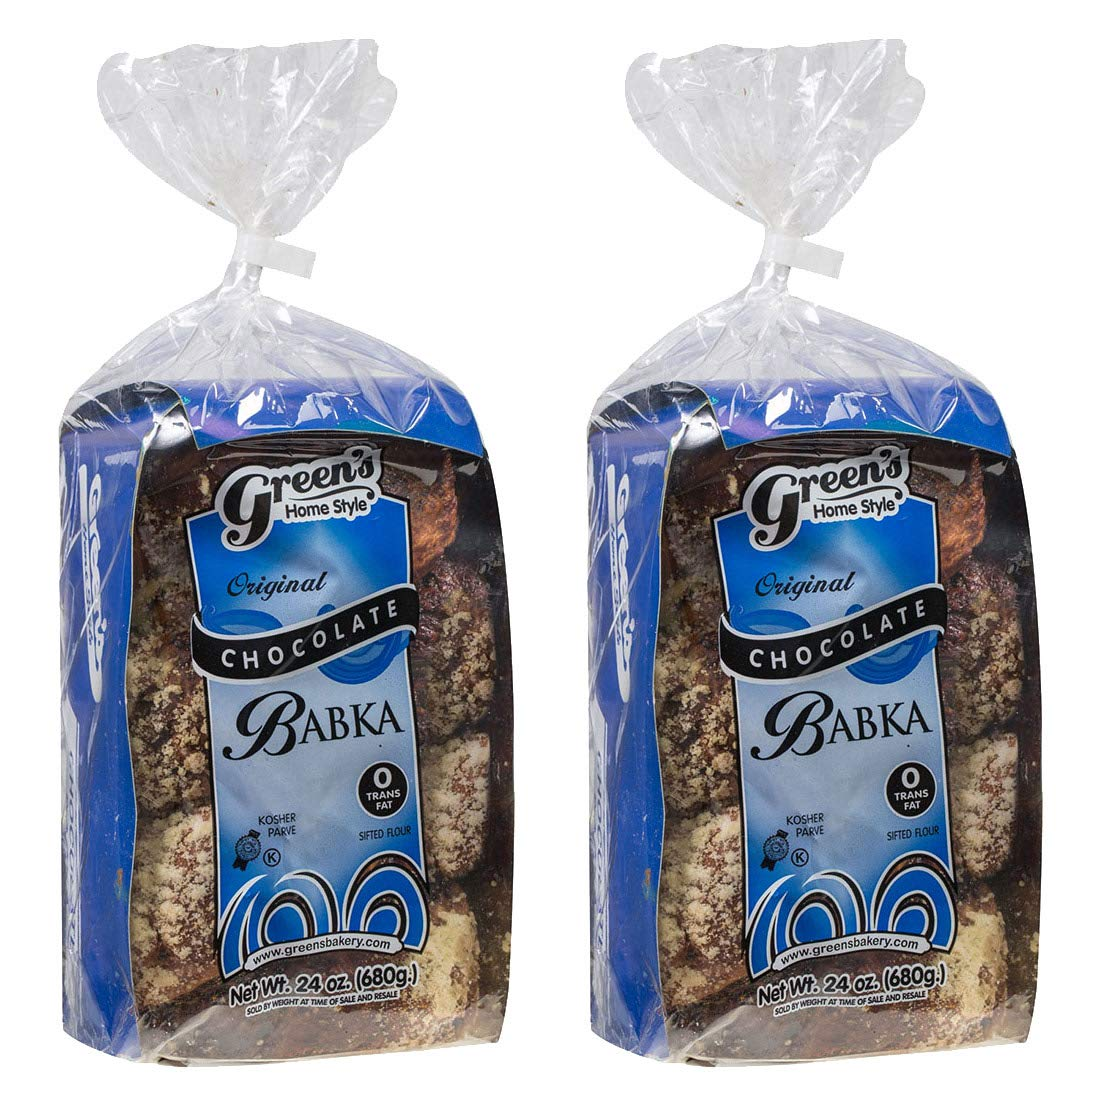 Green's Bakery Traditional Kosher Chocolate Babka, 24 oz - 2 Pack